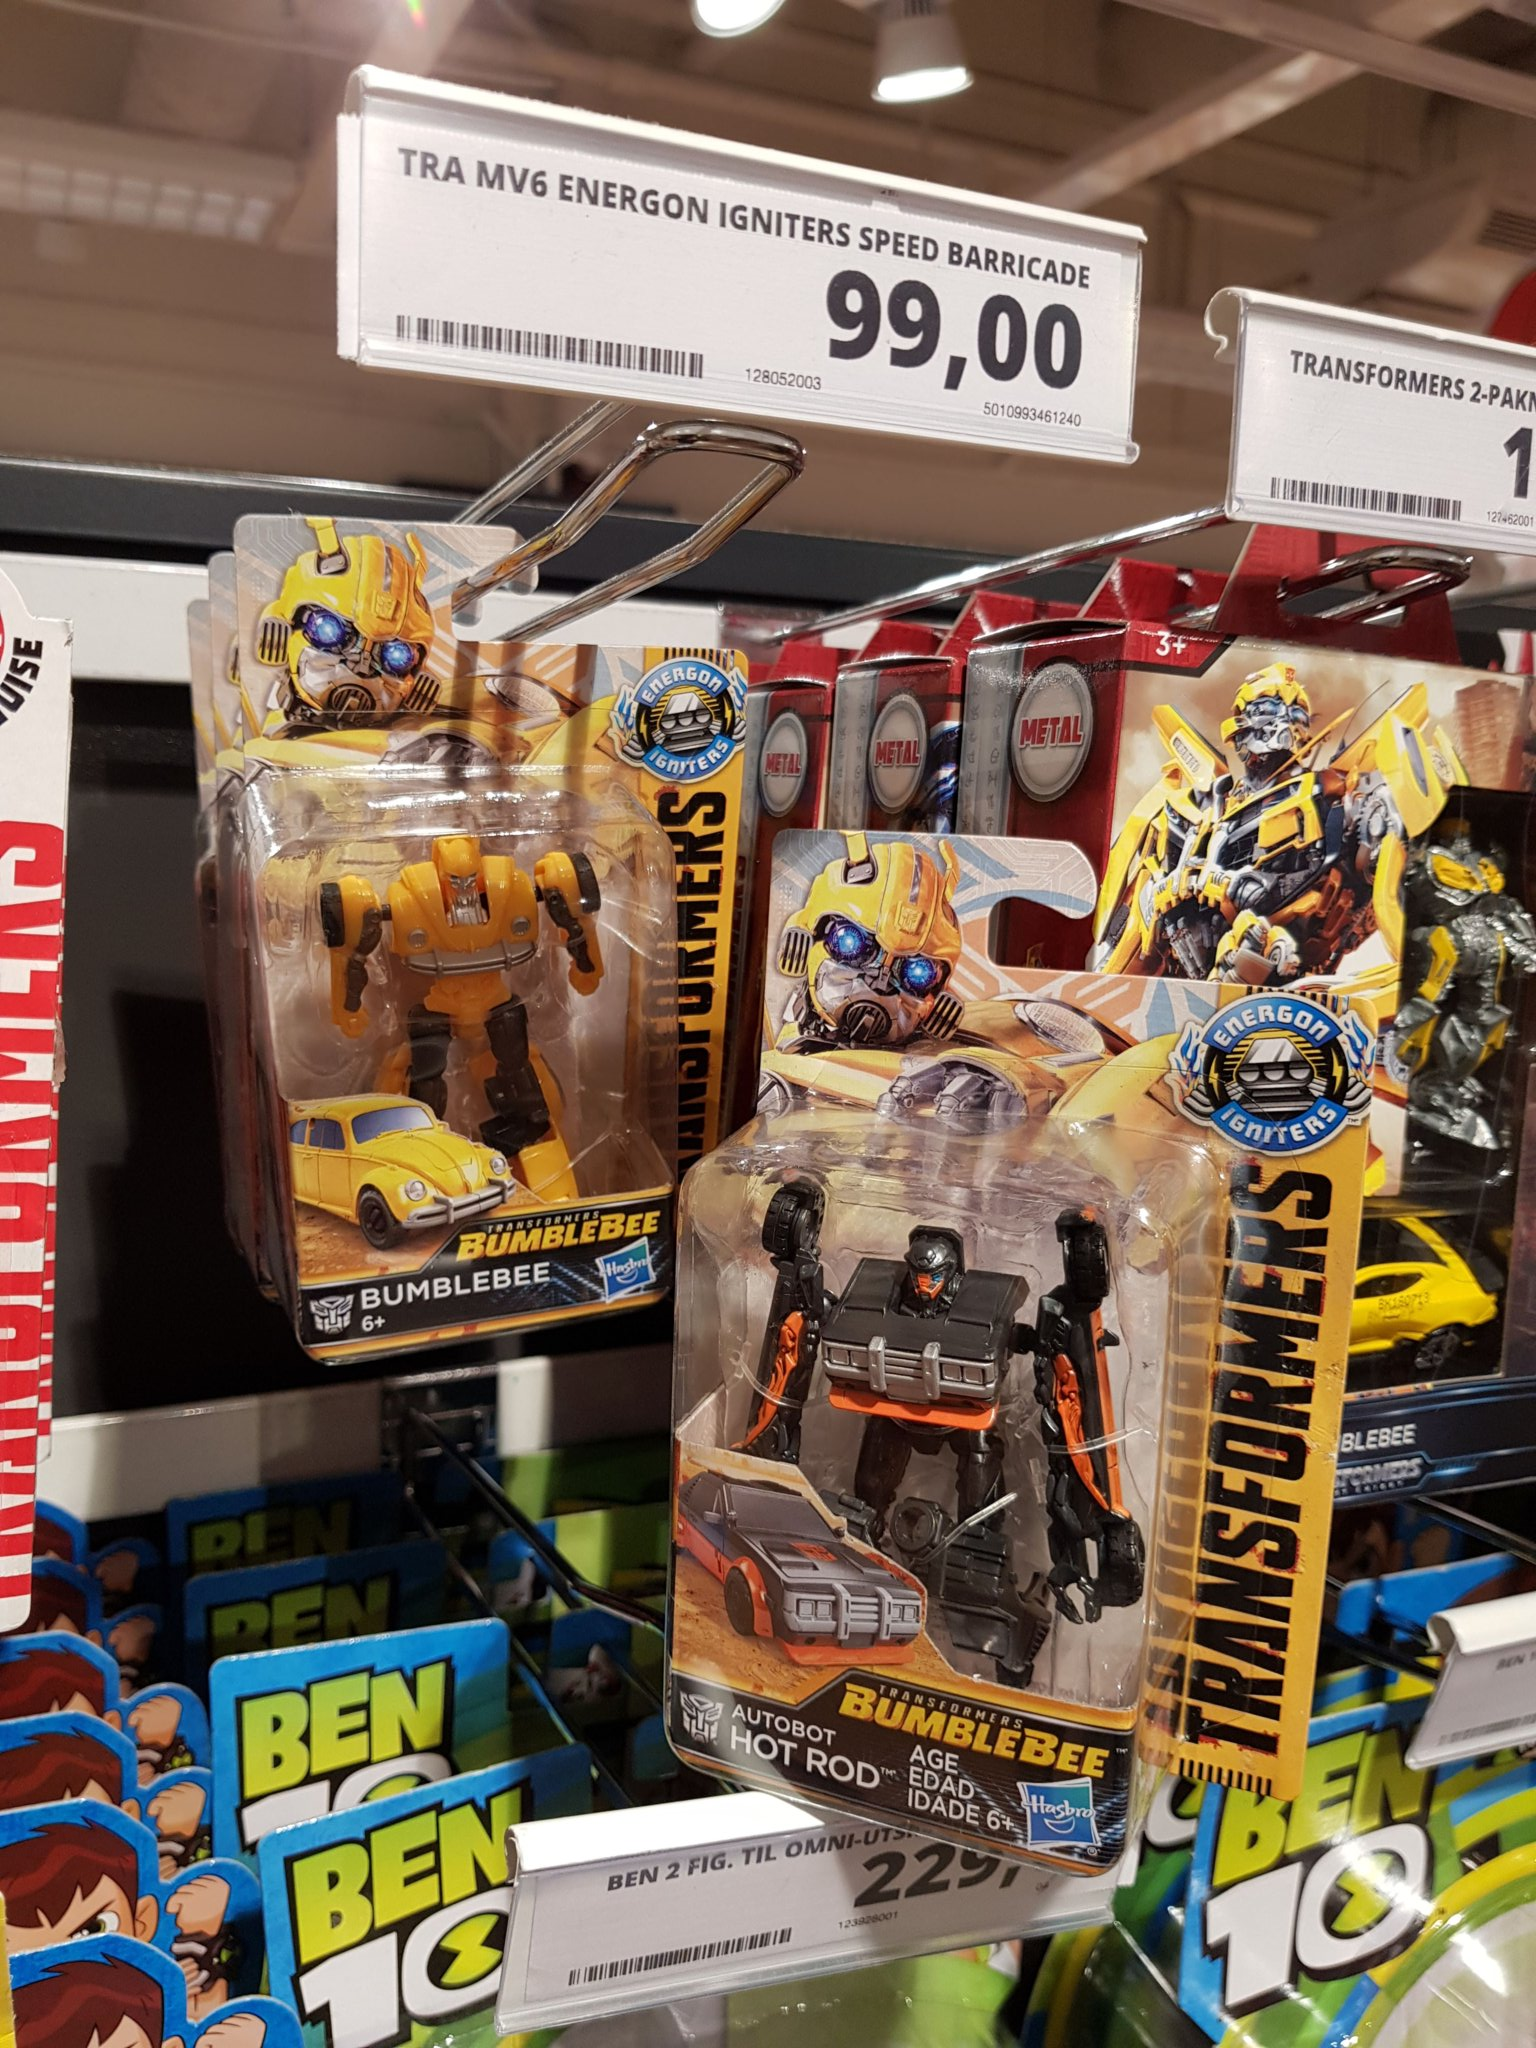 Bumblebee Movie Toys Out In Norway Transformers News